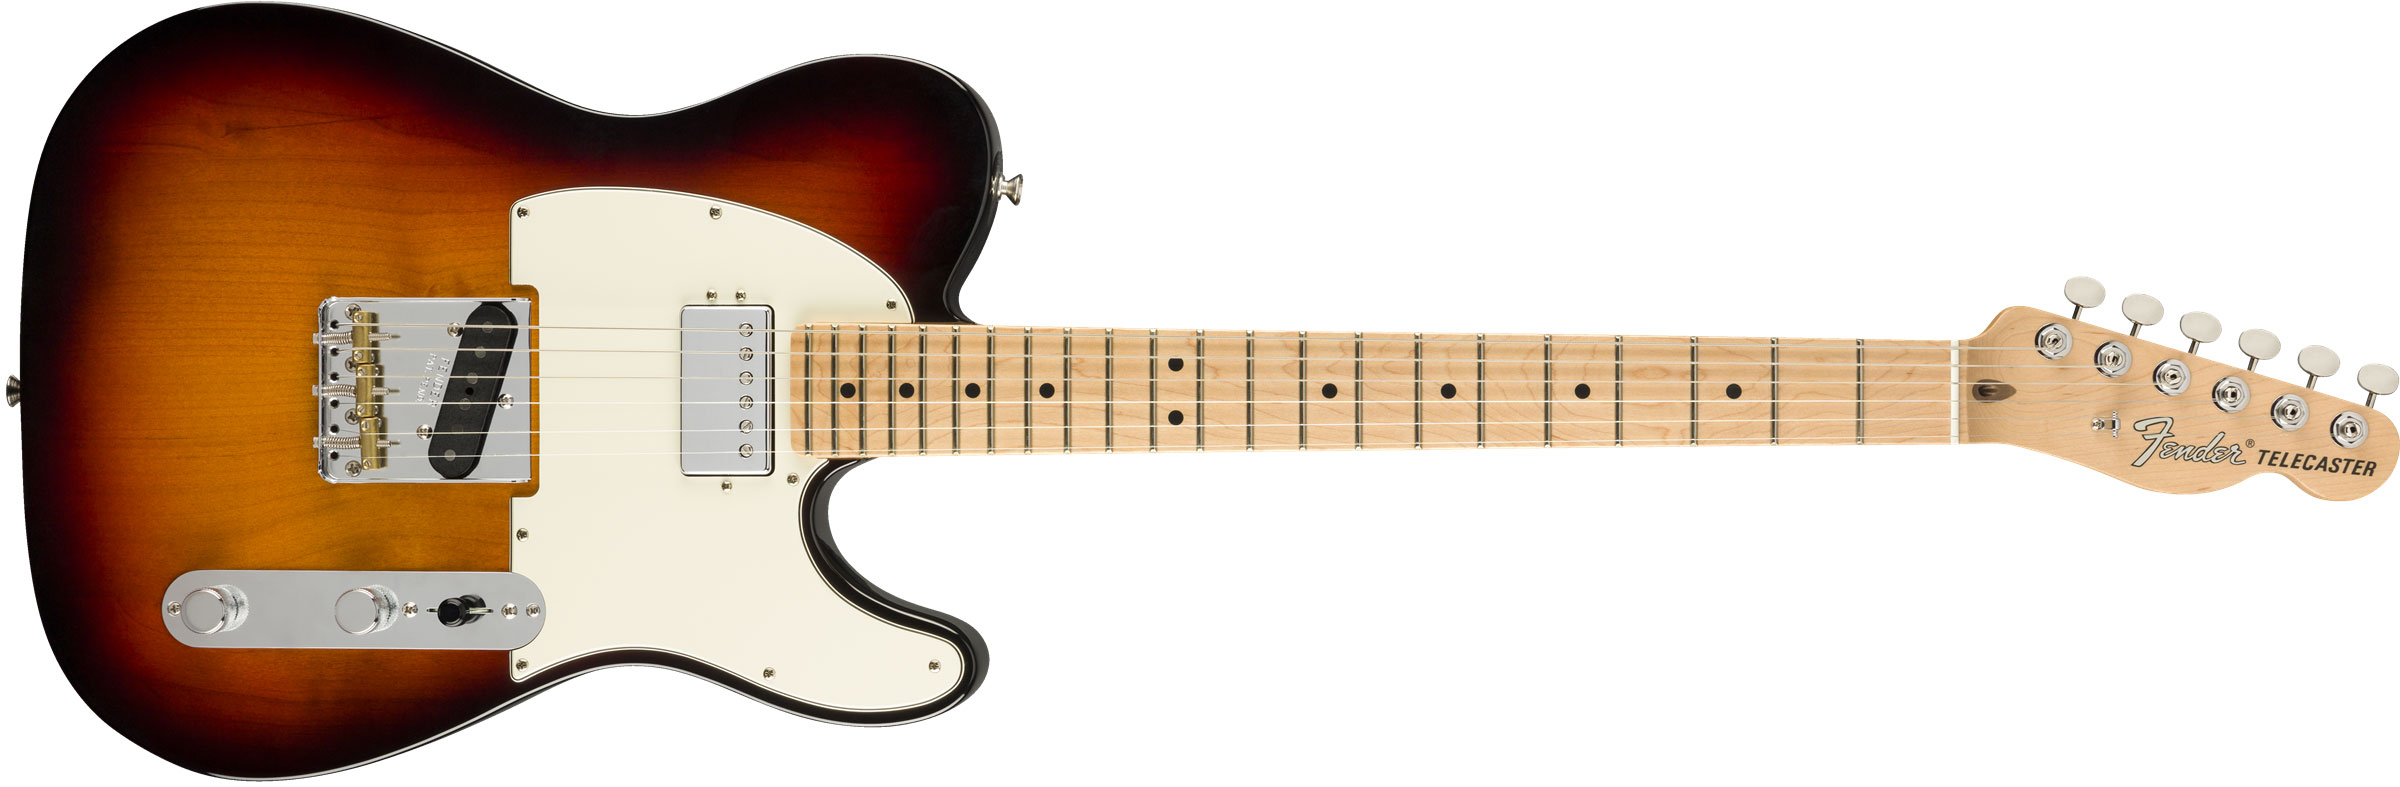 GUITARRA FENDER 011 5122 - AM PERFORMER TELECASTER HUM MN - 300 - 3-COLOR SUNBURST